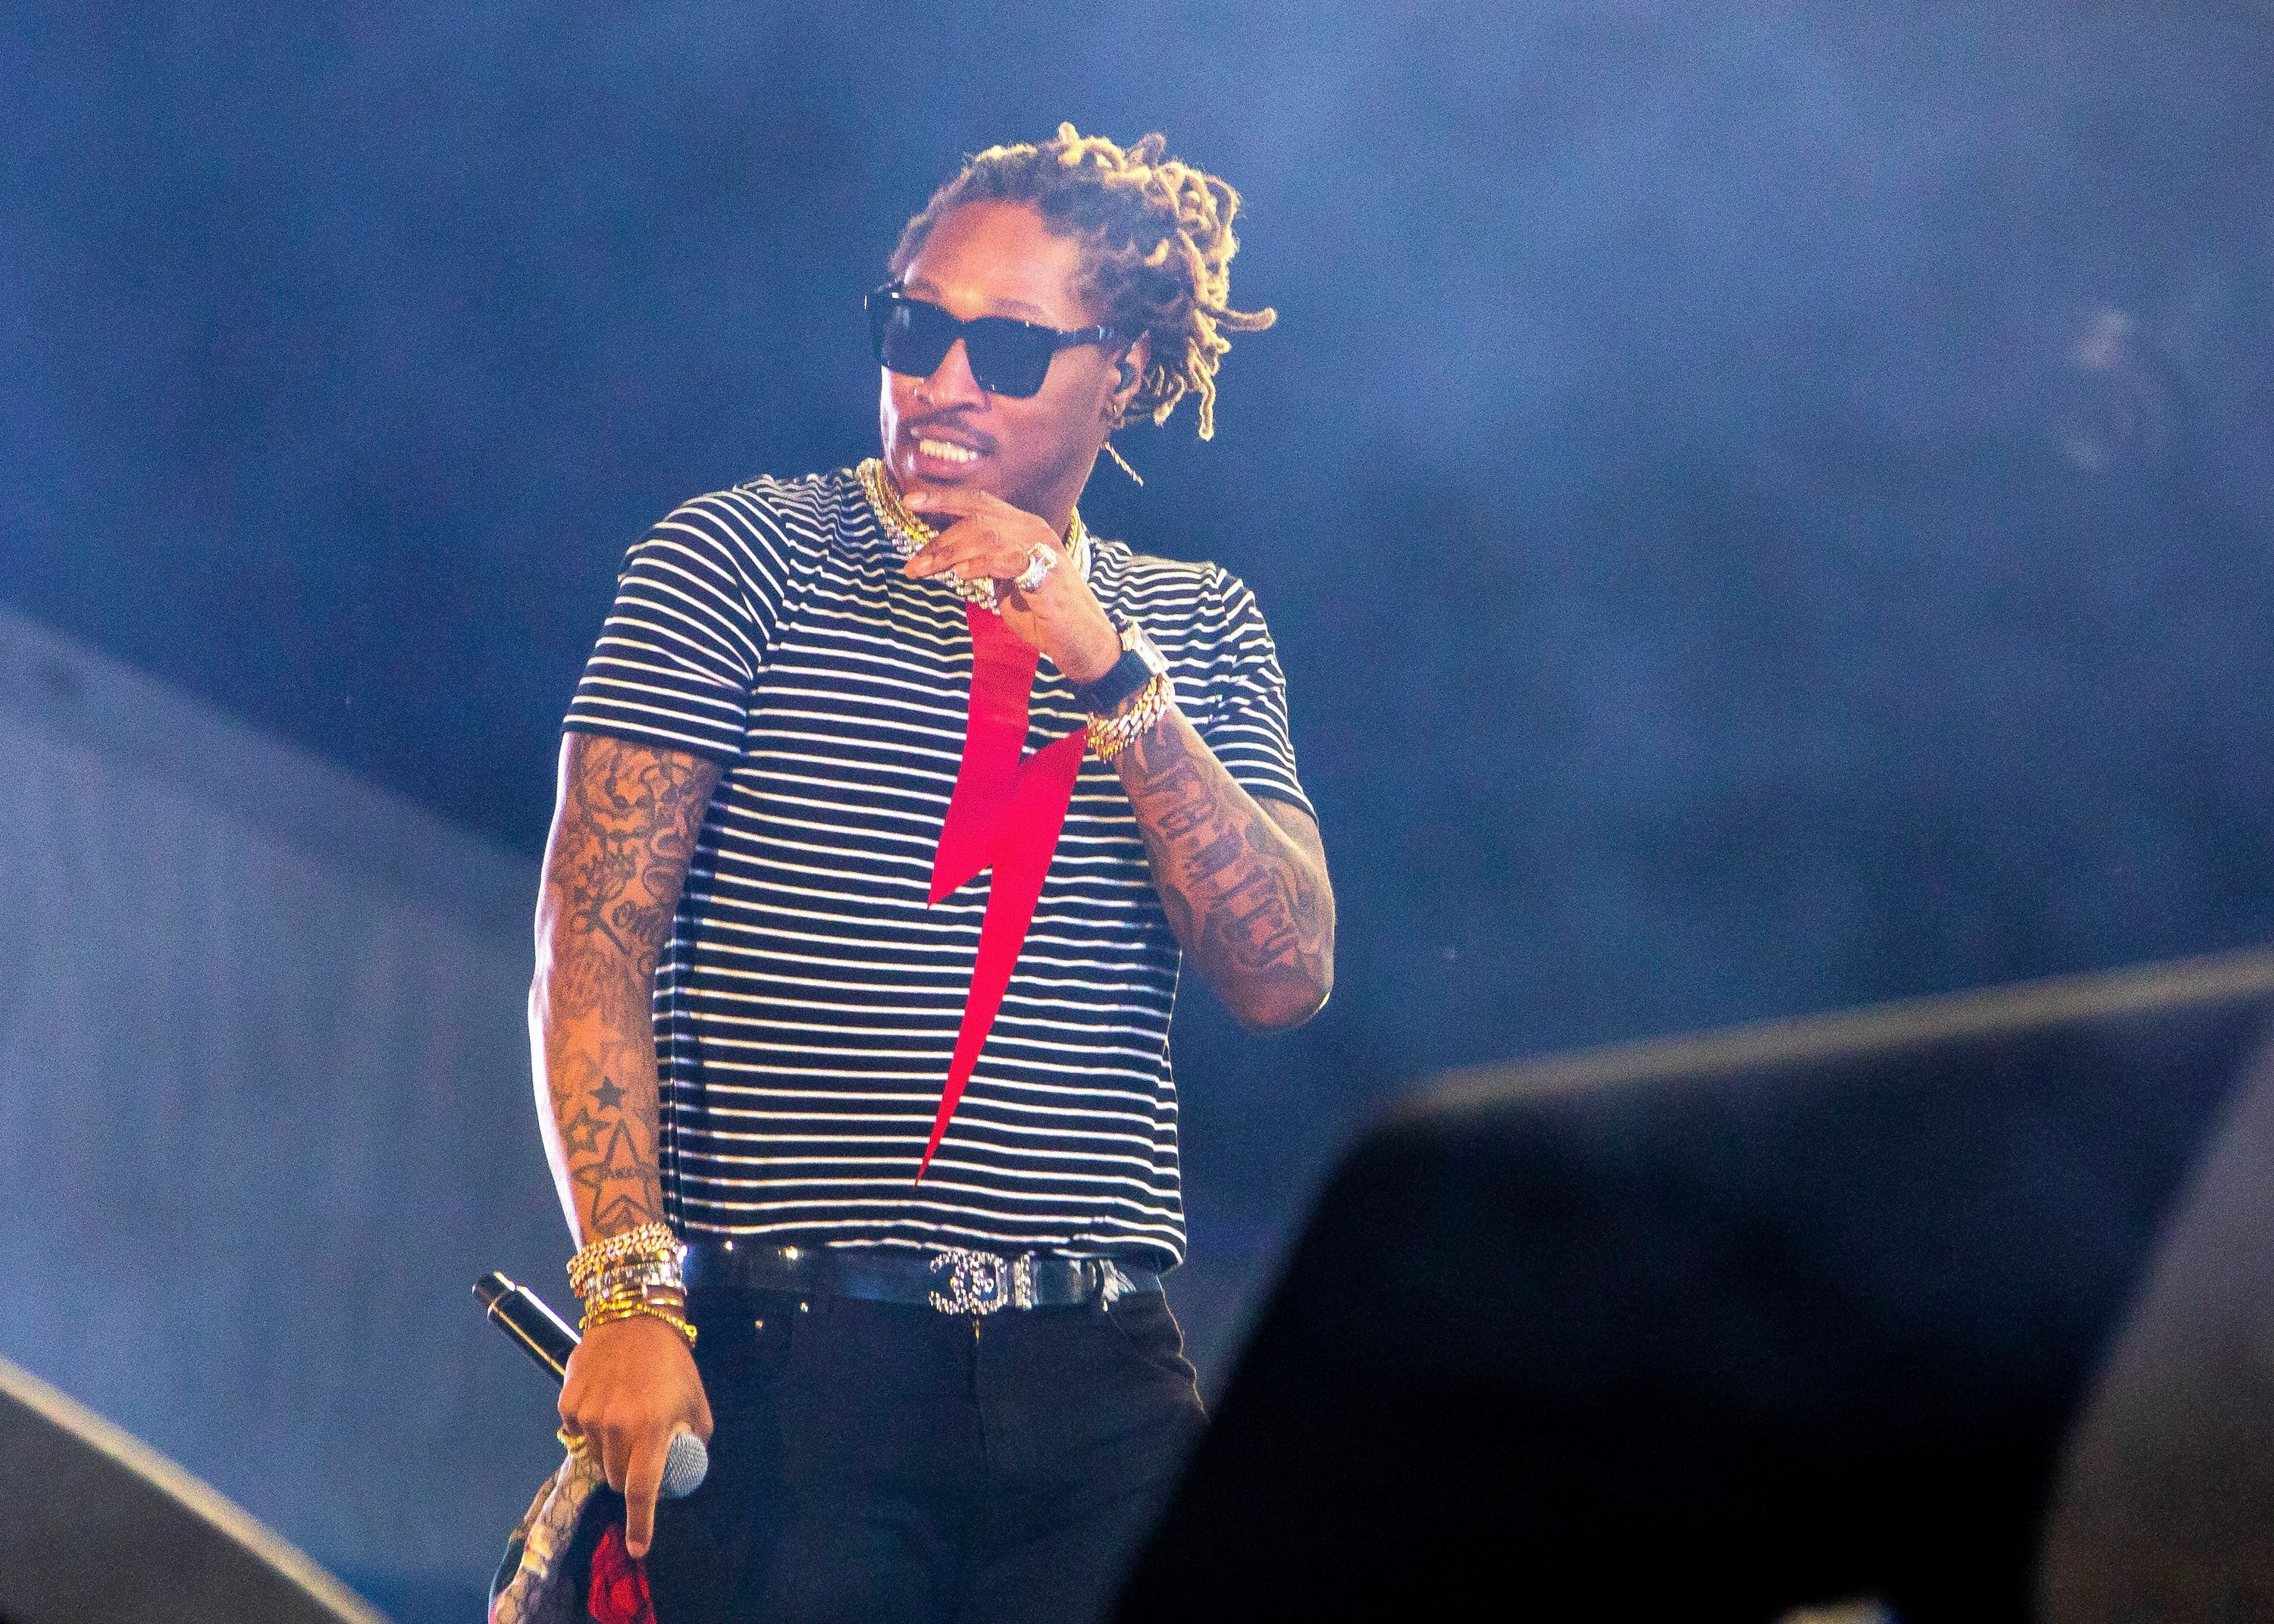 Rapper Future performing at the Festival d'ete de Quebec in 2018 in Quebec City, Canada | Source: Getty Images